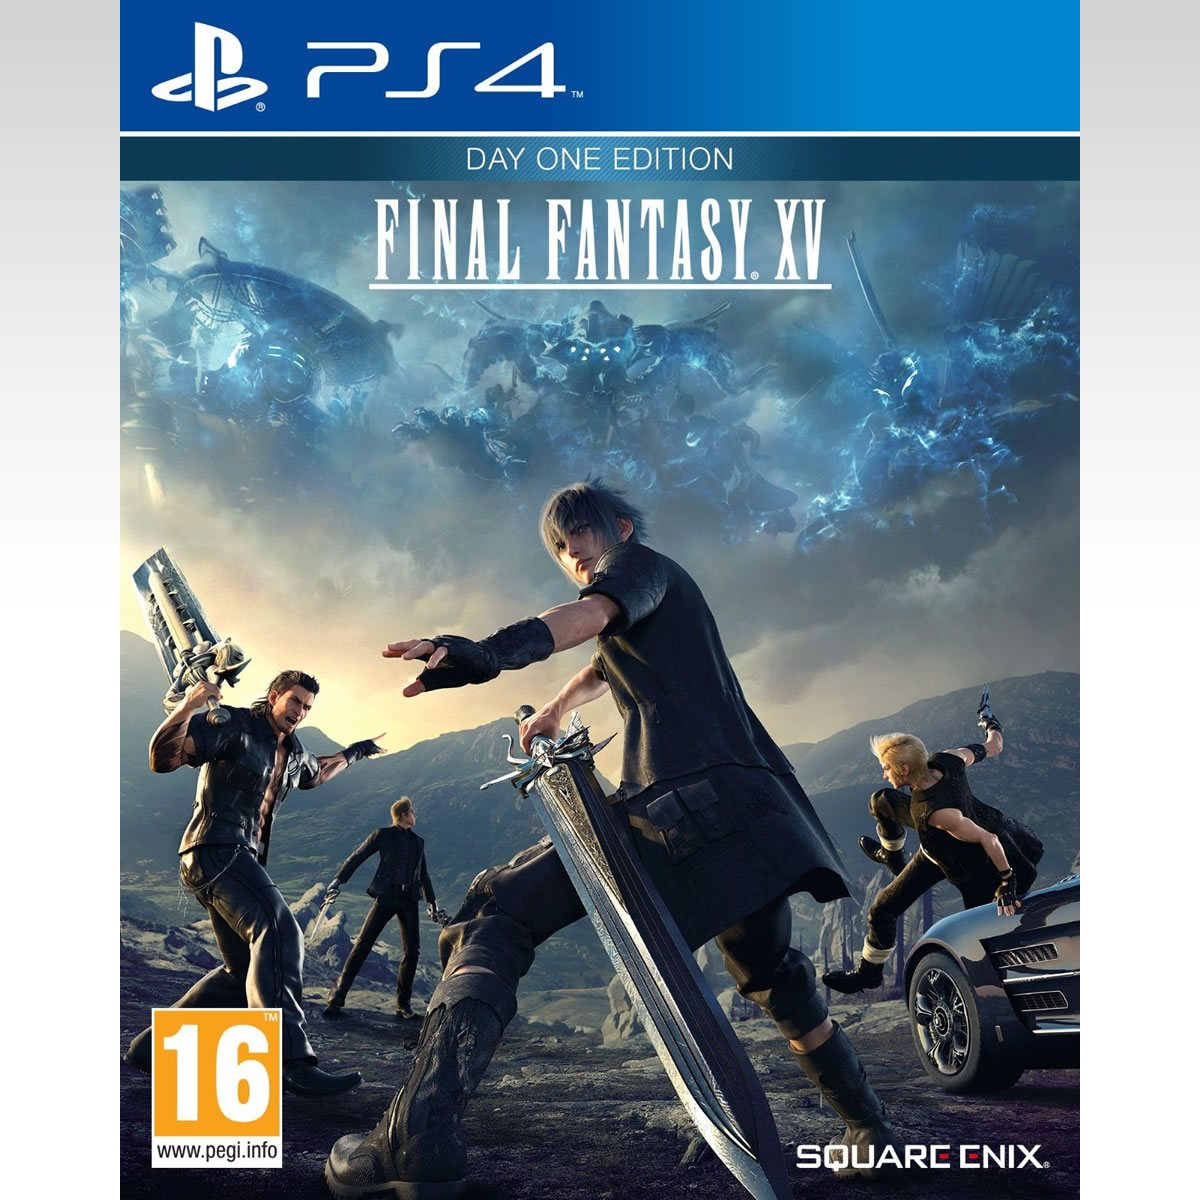 FINAL FANTASY XV - DAY ONE EDITION (PS4)